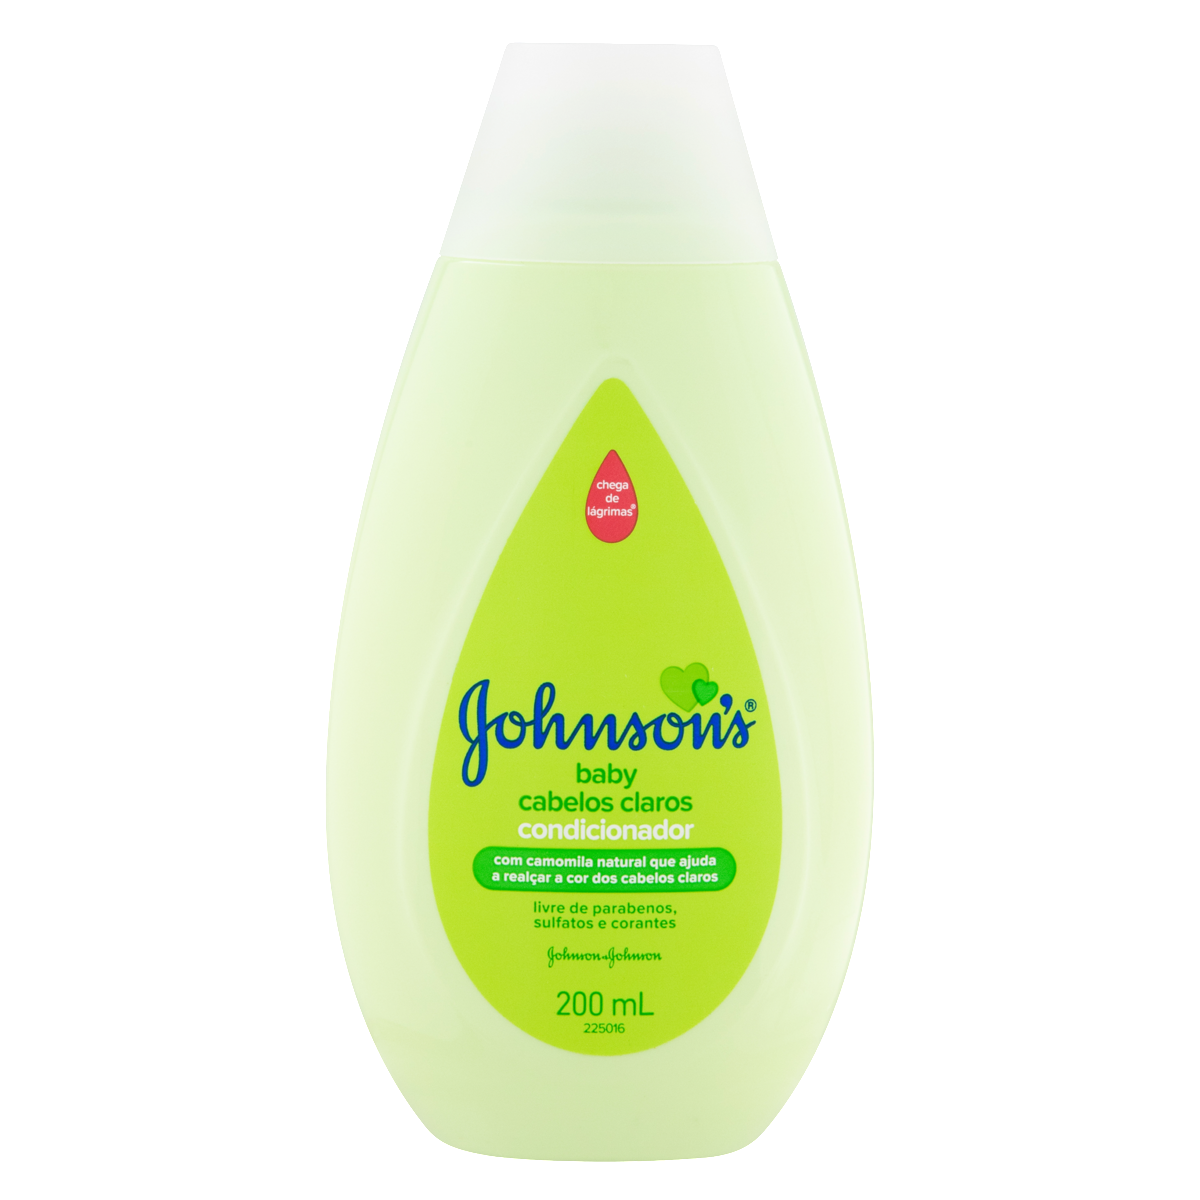 7891010030476 - CONDICIONADOR CAMOMILA JOHNSON'S BABY FRASCO 200ML